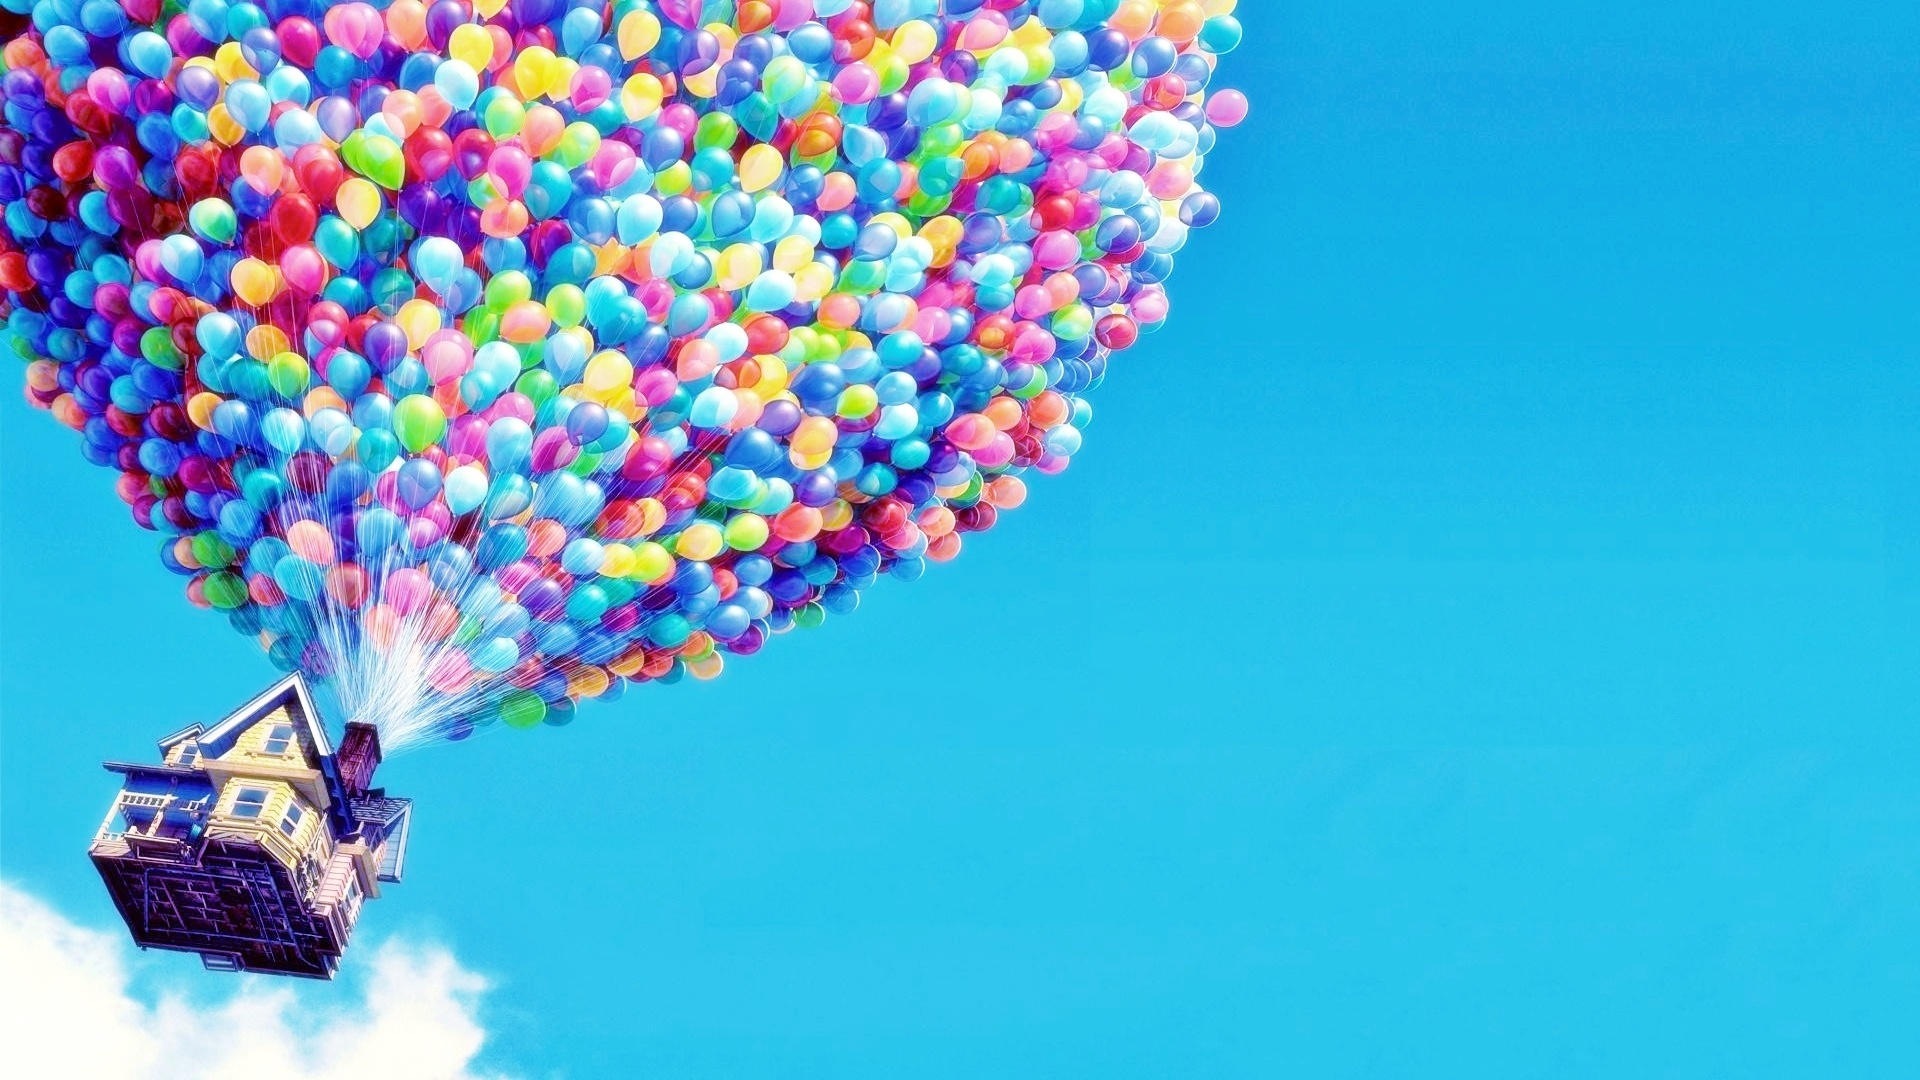 UP Movie Wallpaper HD 6932482 1920x1080